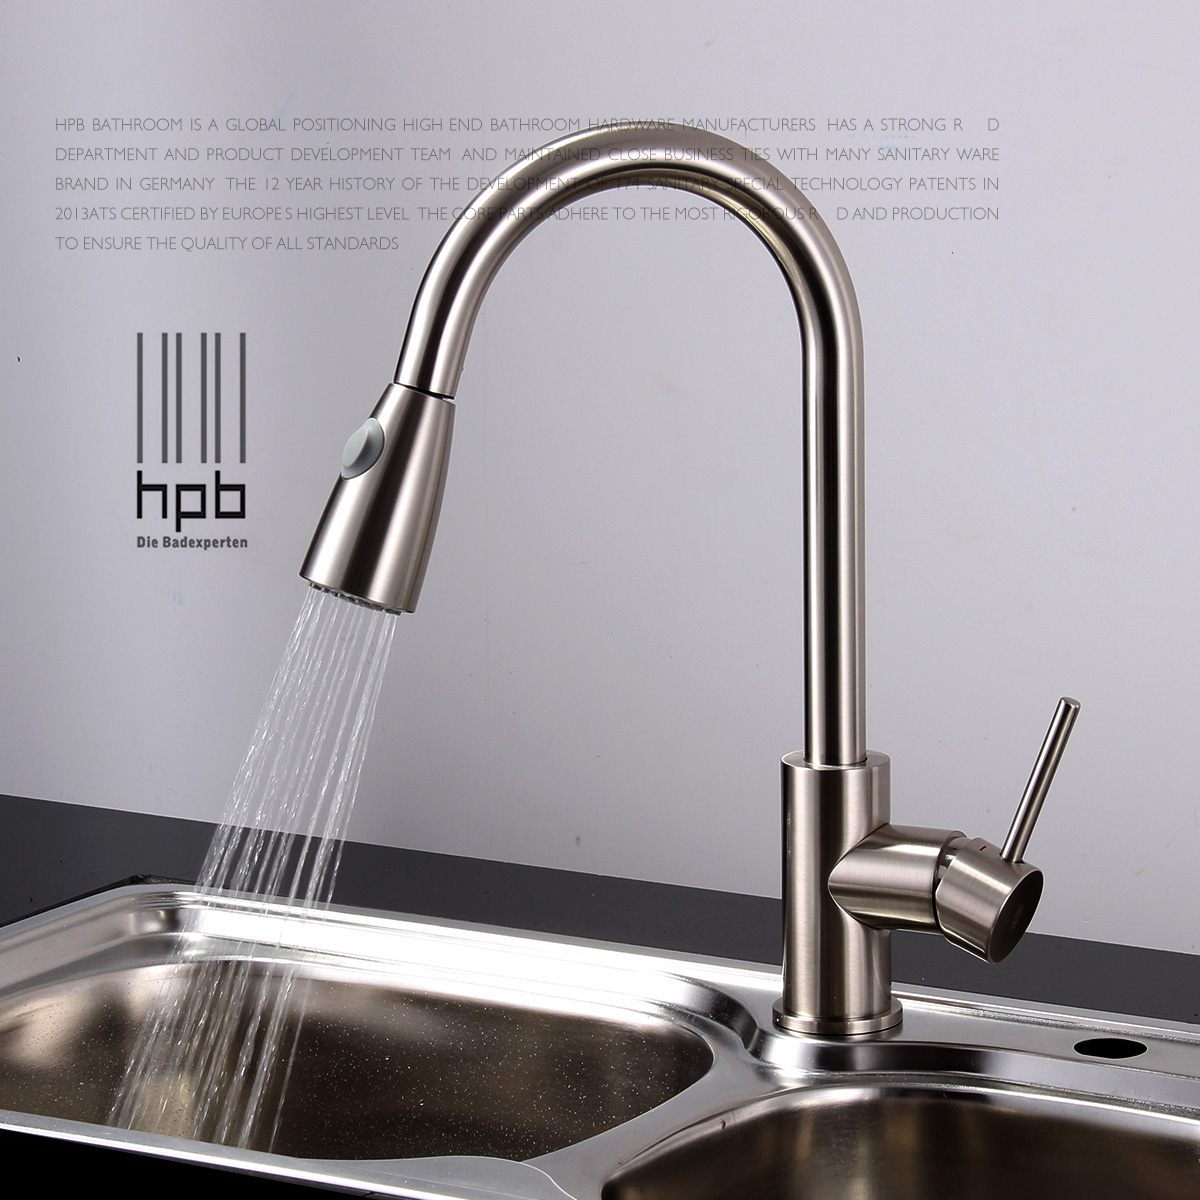 US $120.62 5% OFF|Brass sink mixer hot and cold water tap pull type  retractable kitchen faucet-in Kitchen Faucets from Home Improvement on  AliExpress